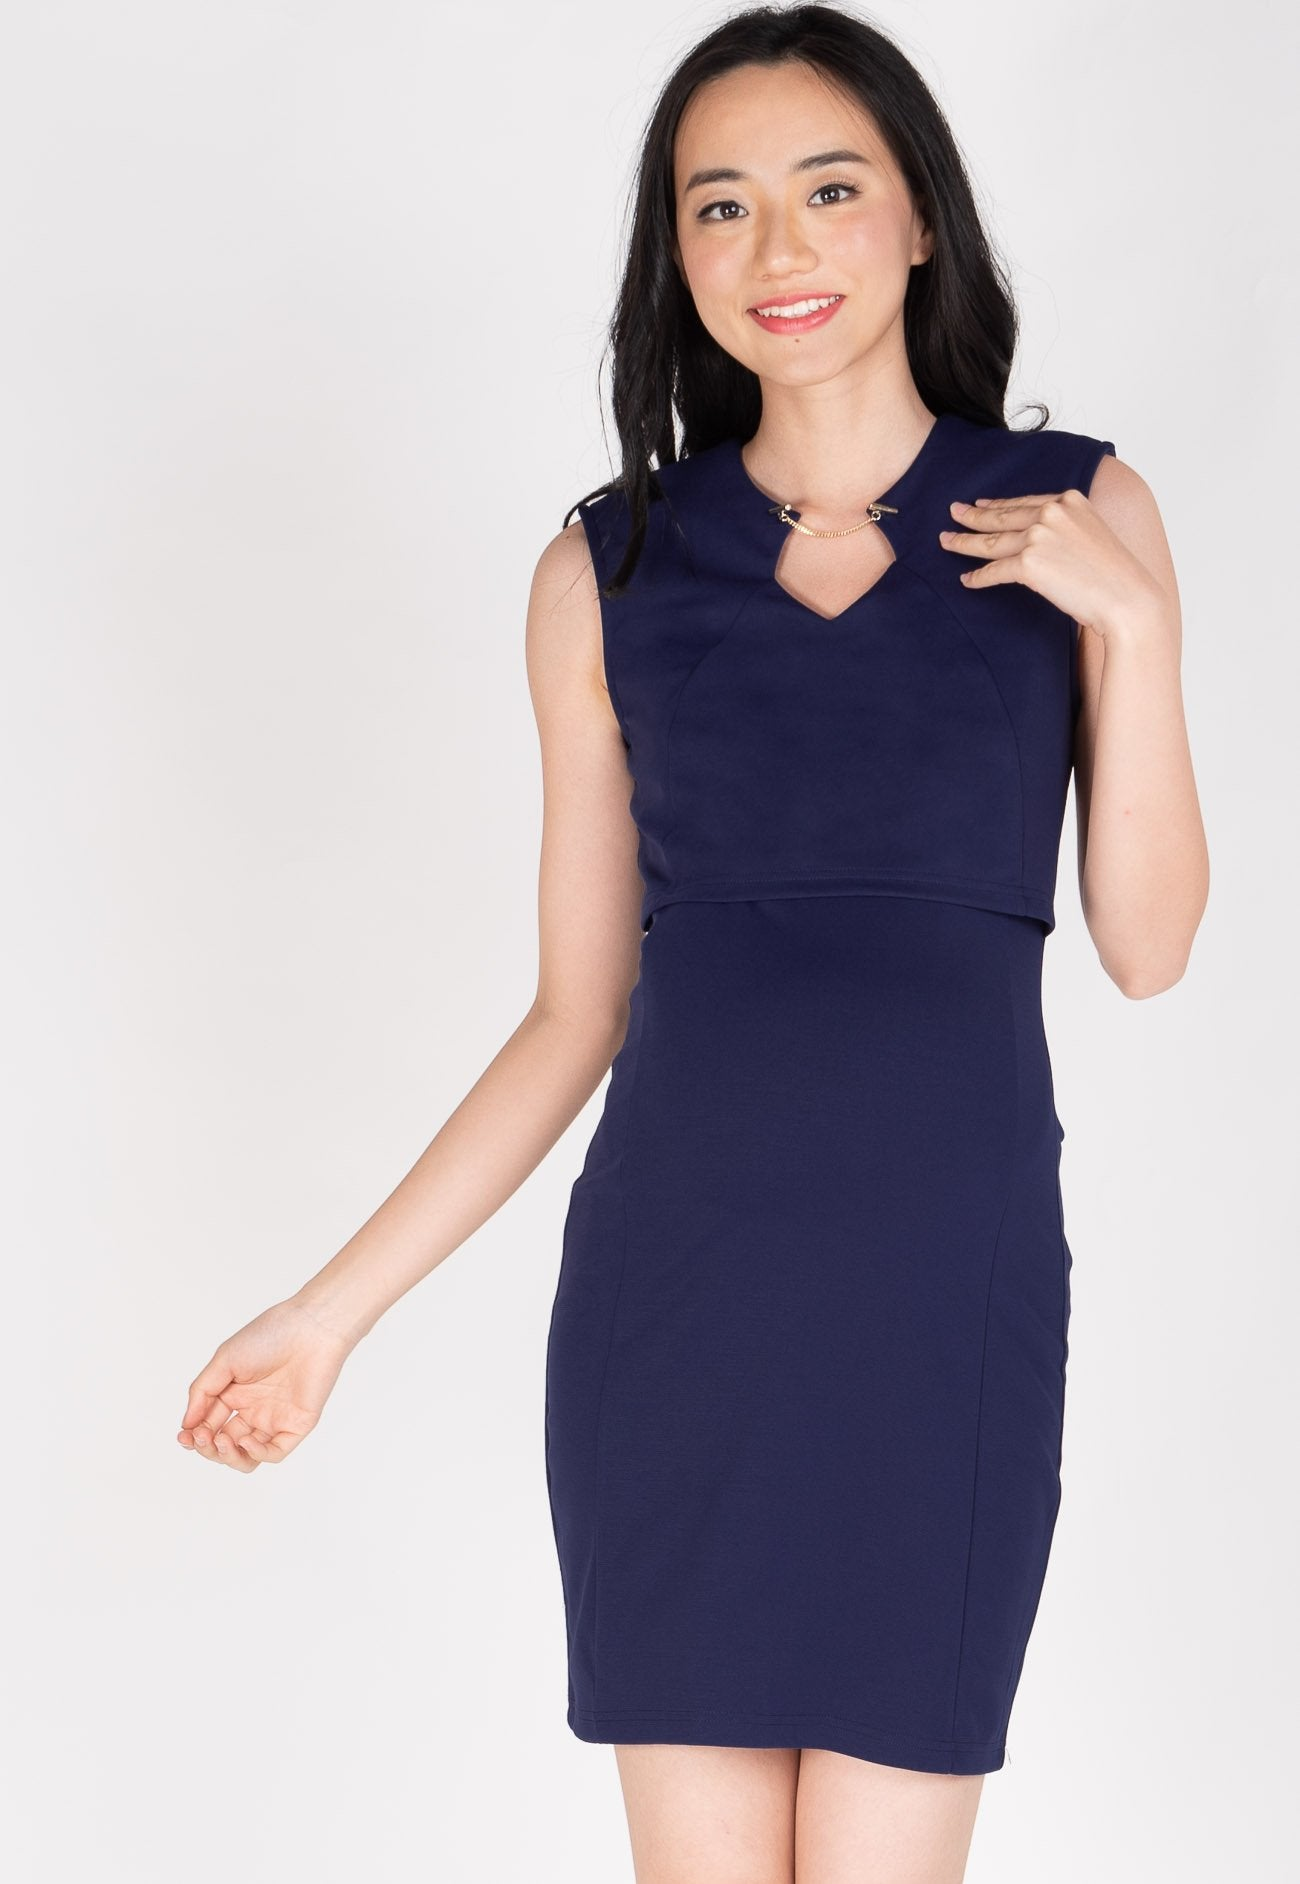 Belva Chain Nursing Dress in Navy  by Jump Eat Cry - Maternity and nursing wear